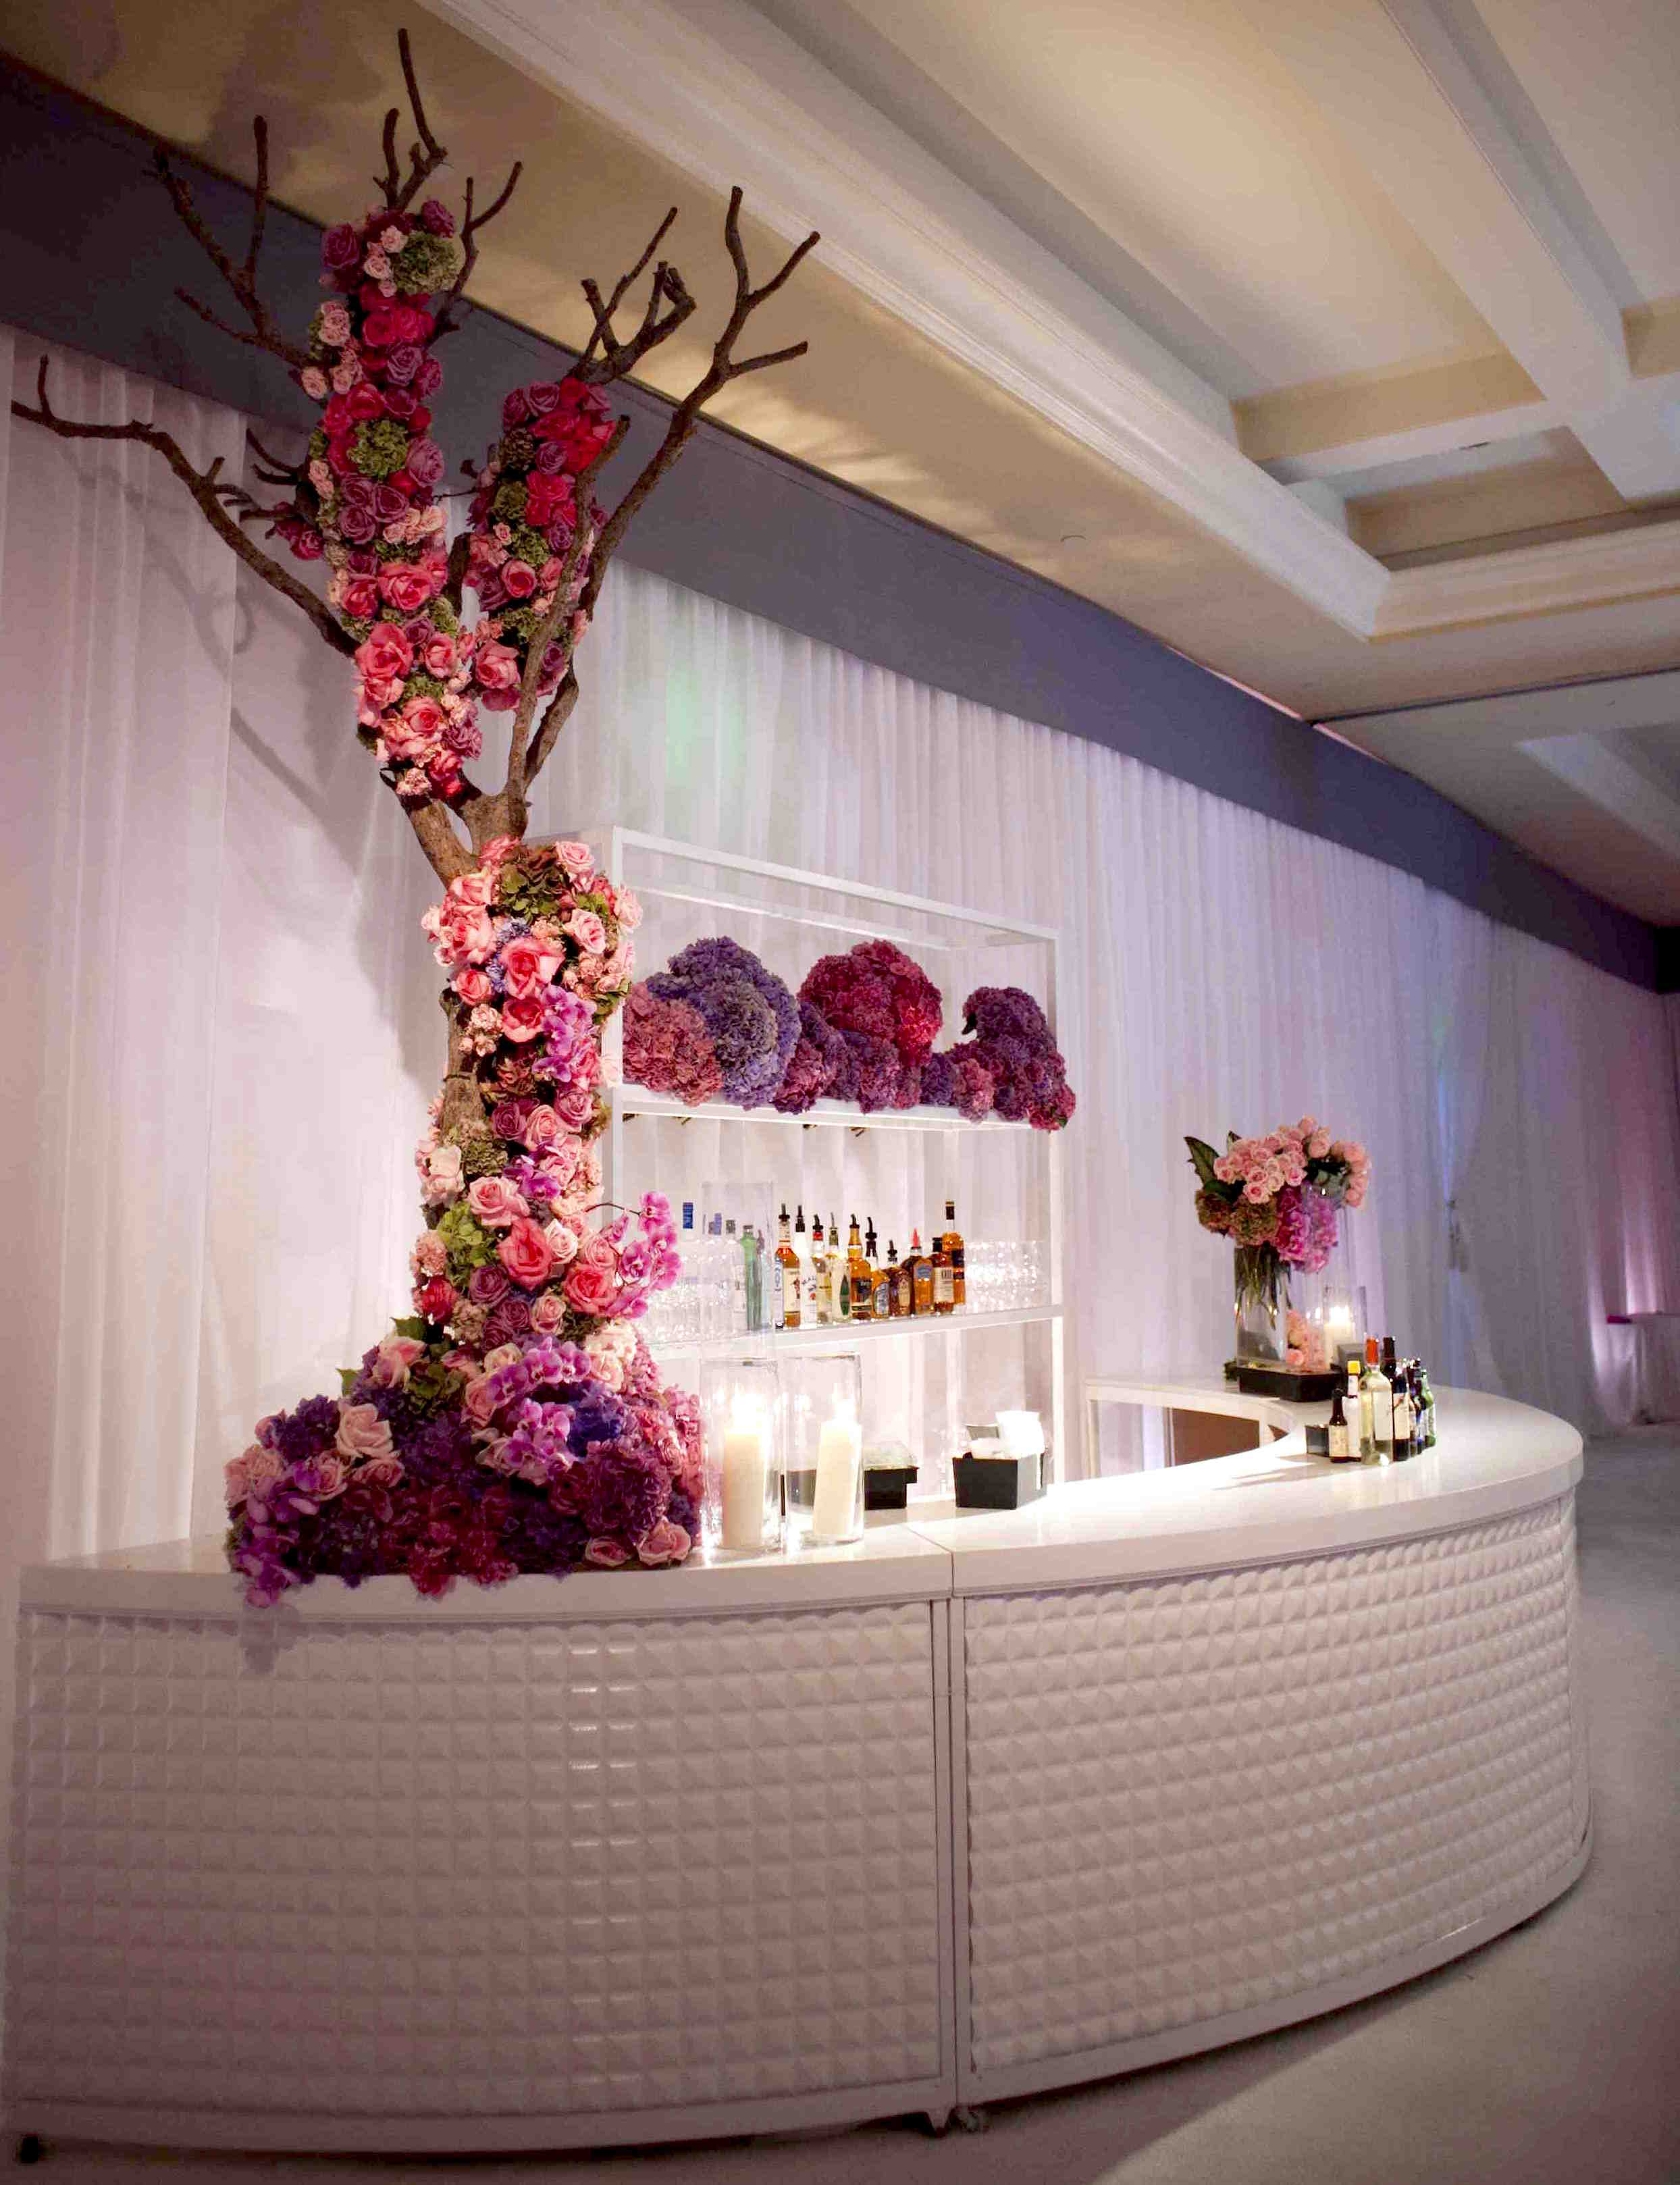 White tufted wedding bar with flowers